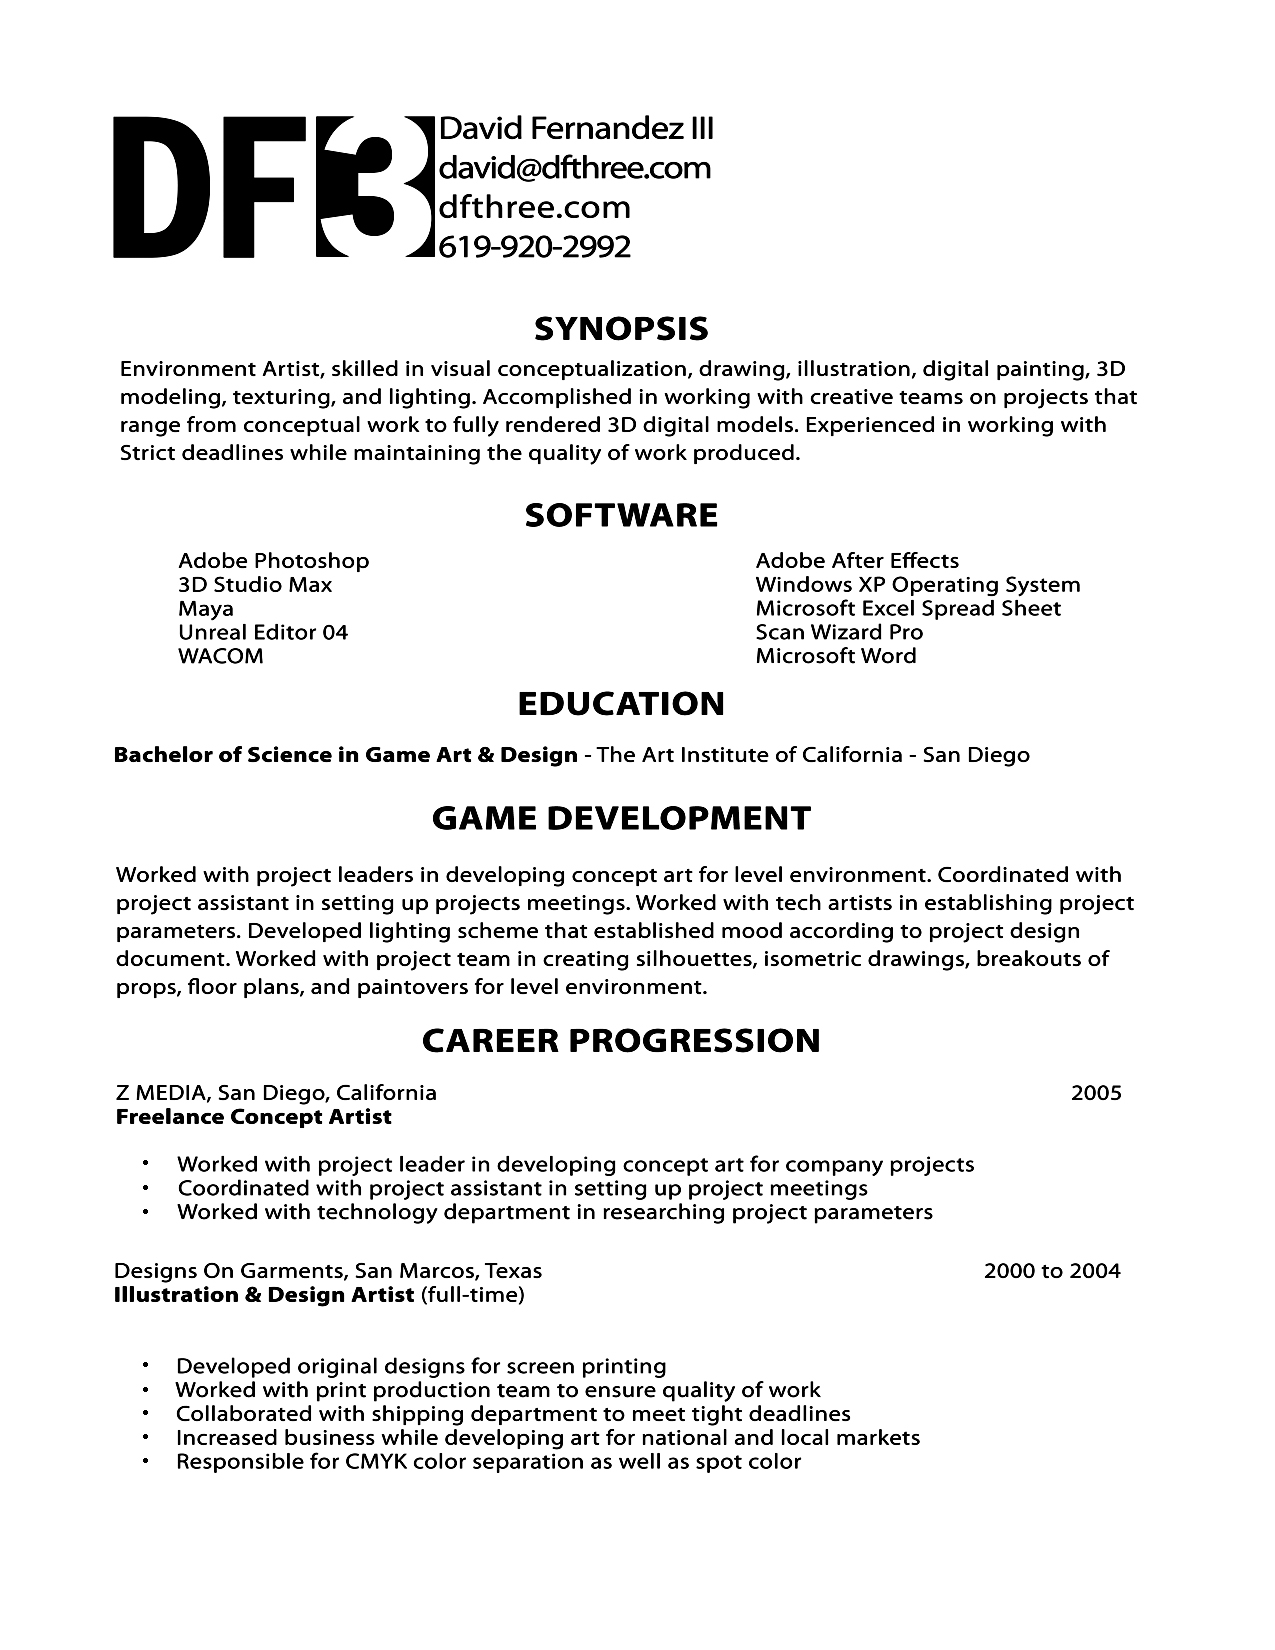 Opposenewapstandardsus  Winning Game Developer Resume Game Tester Resume Sample Game Tester  With Entrancing Better Jobs Faster With Enchanting Teacher Resume Skills Also Resume Relevant Coursework In Addition Supervisor Job Description For Resume And Dental Assistant Resumes As Well As Med Surg Nurse Resume Additionally Actuary Resume From Kelseymarieco With Opposenewapstandardsus  Entrancing Game Developer Resume Game Tester Resume Sample Game Tester  With Enchanting Better Jobs Faster And Winning Teacher Resume Skills Also Resume Relevant Coursework In Addition Supervisor Job Description For Resume From Kelseymarieco